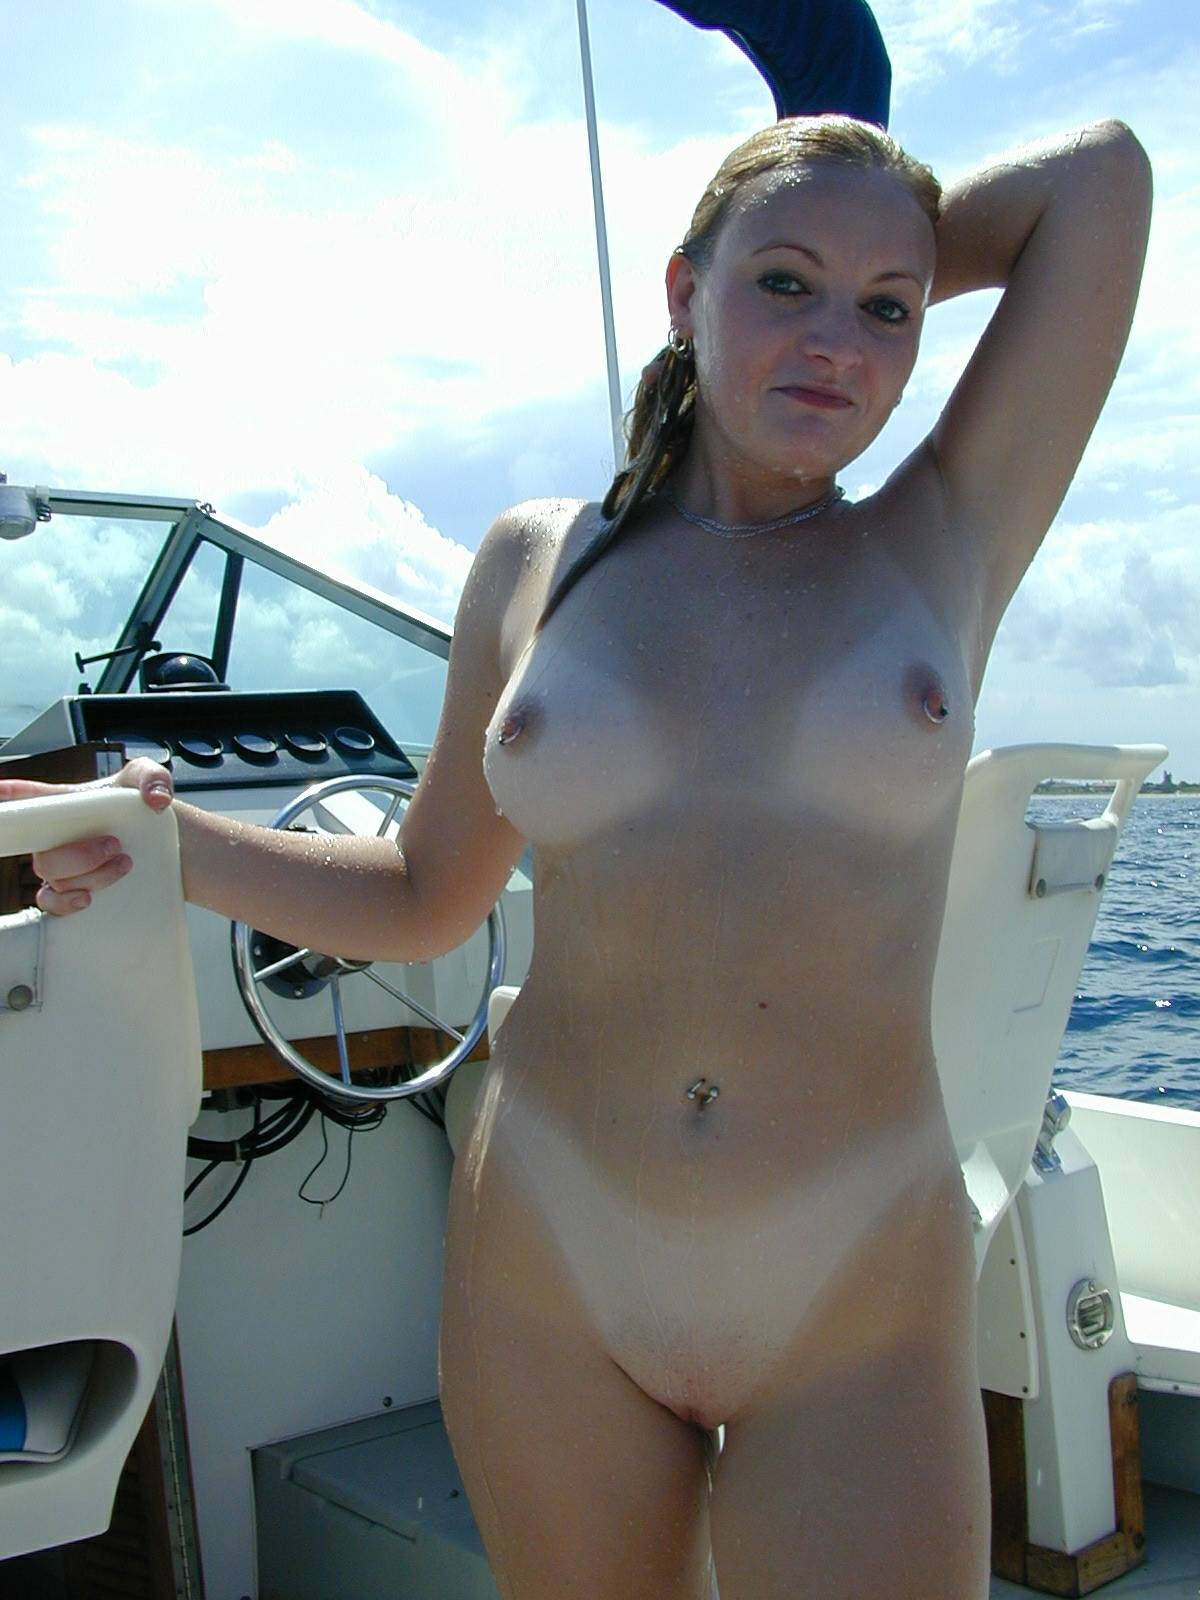 Lascivious naked babe shows her tan lines for a boat ride